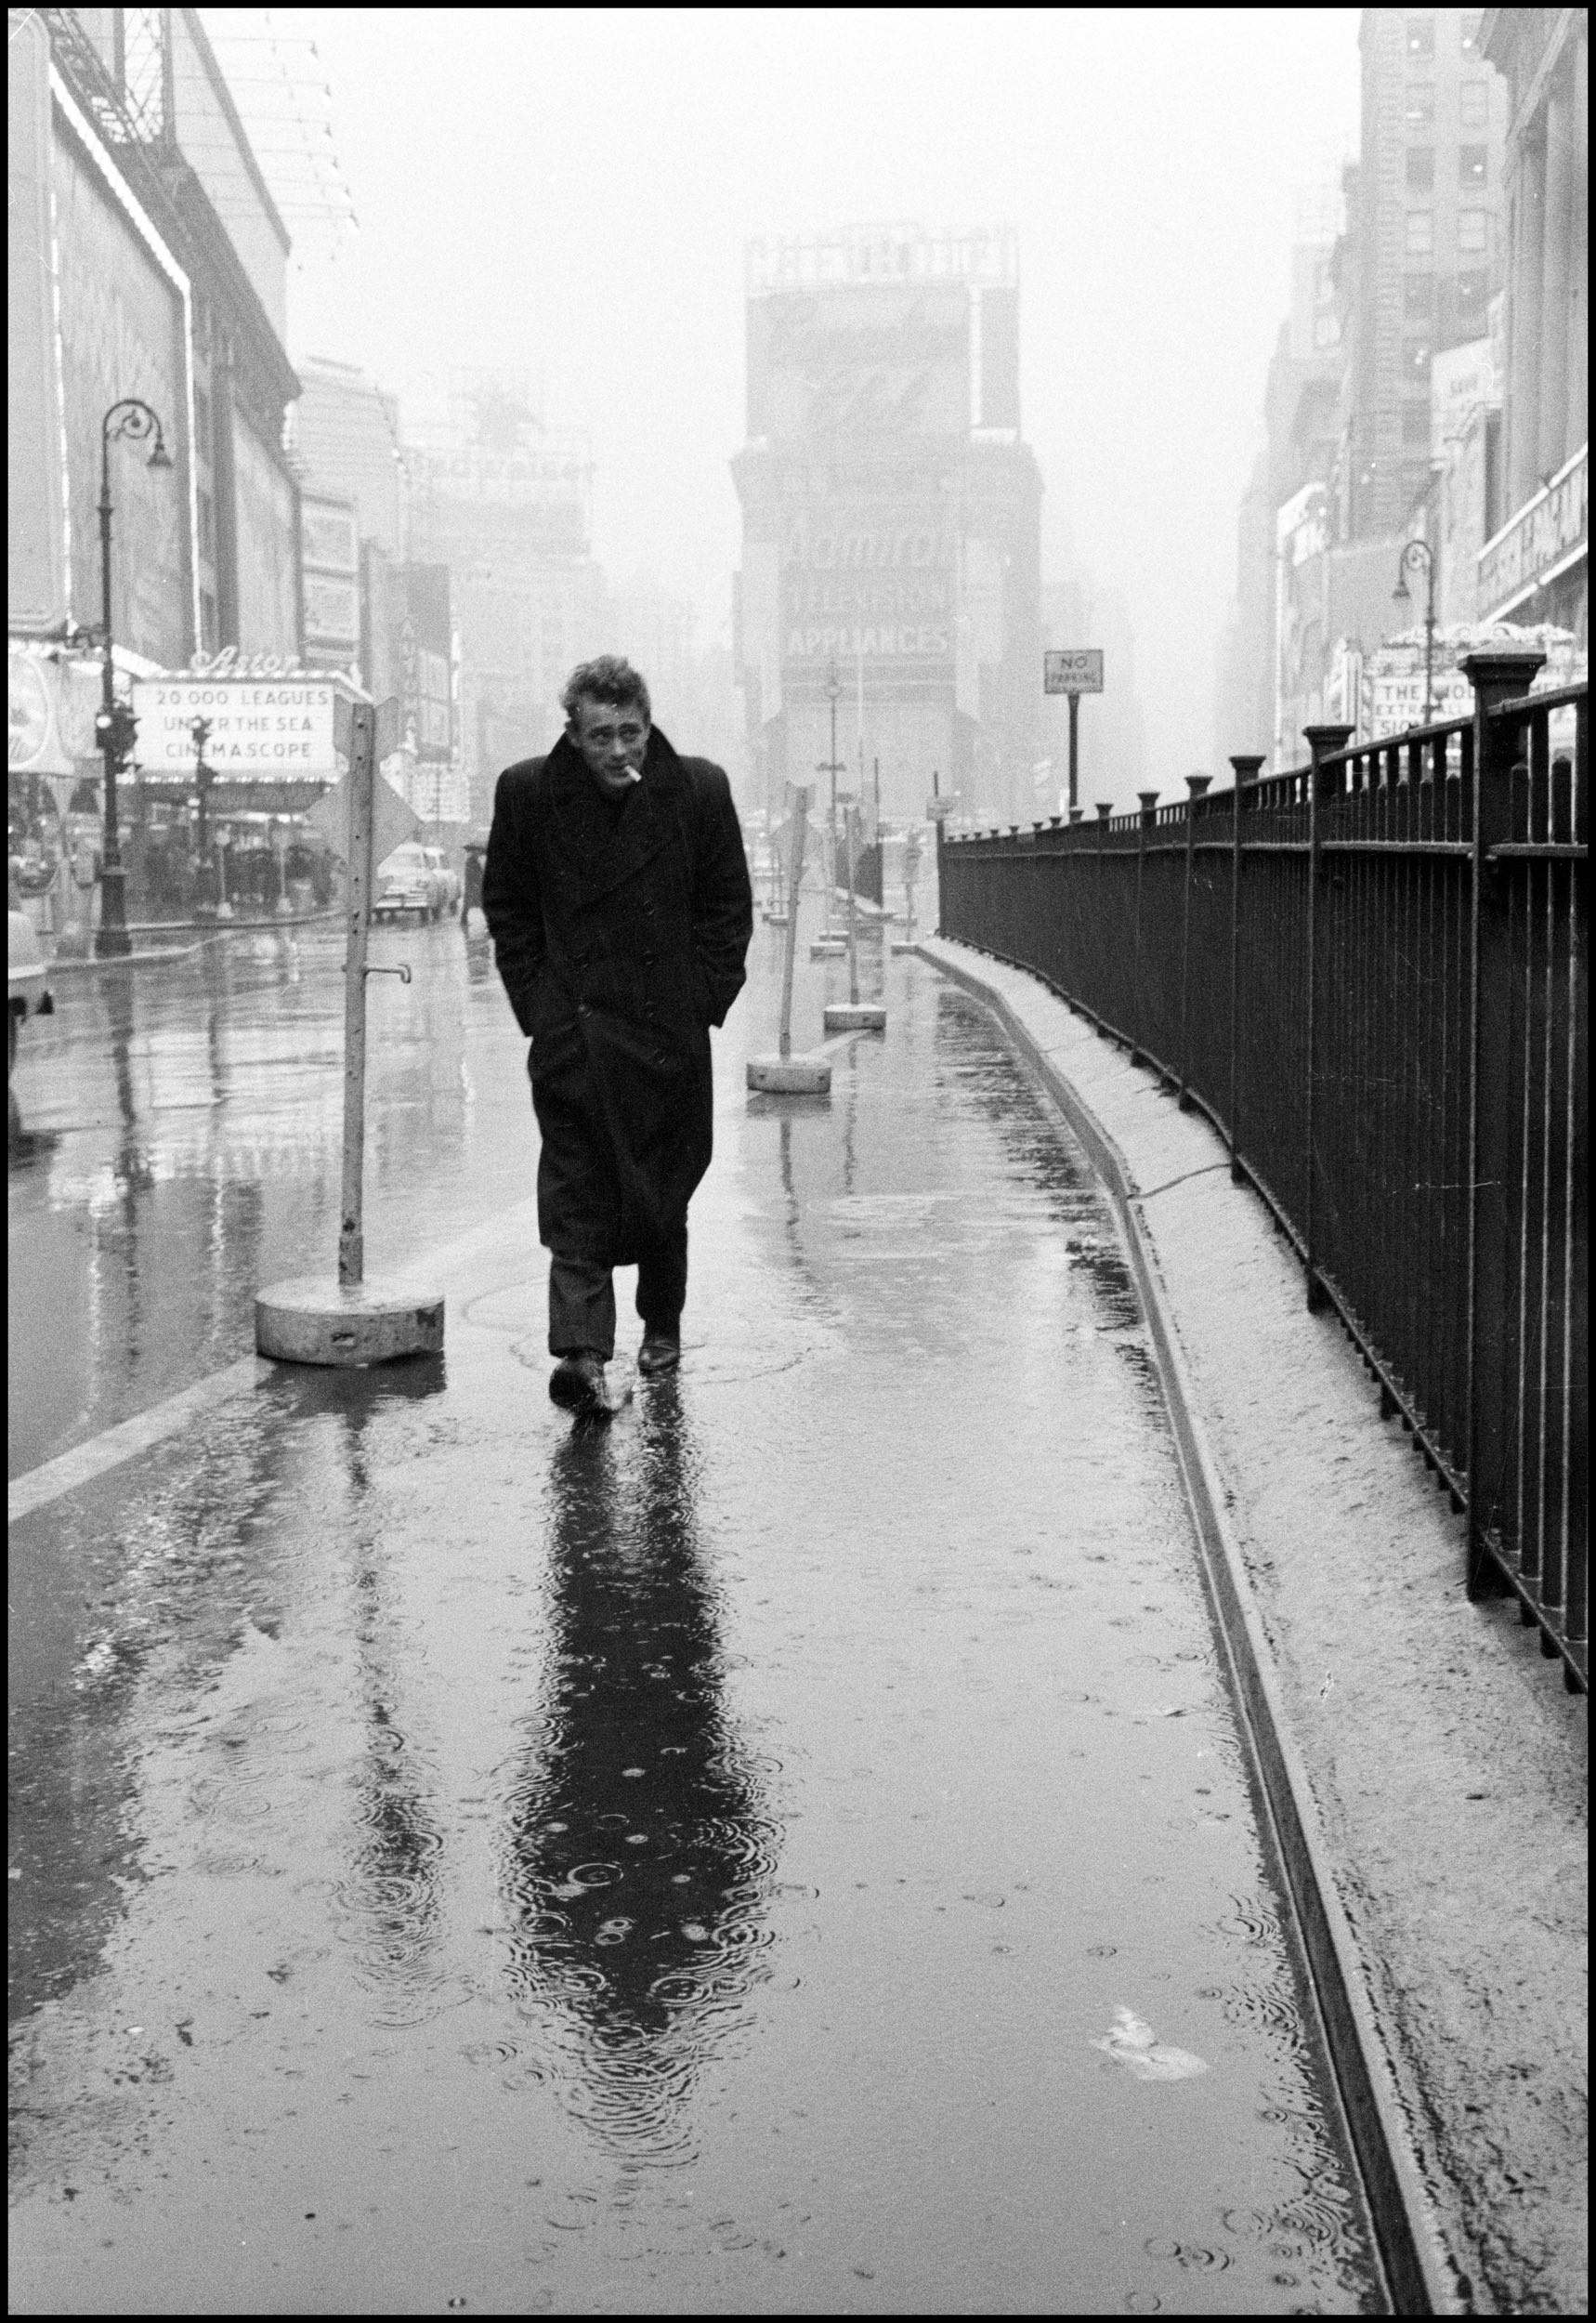 USA. New York City. 1955. James Dean haunted Times Square. Photo by Dennis Stock.